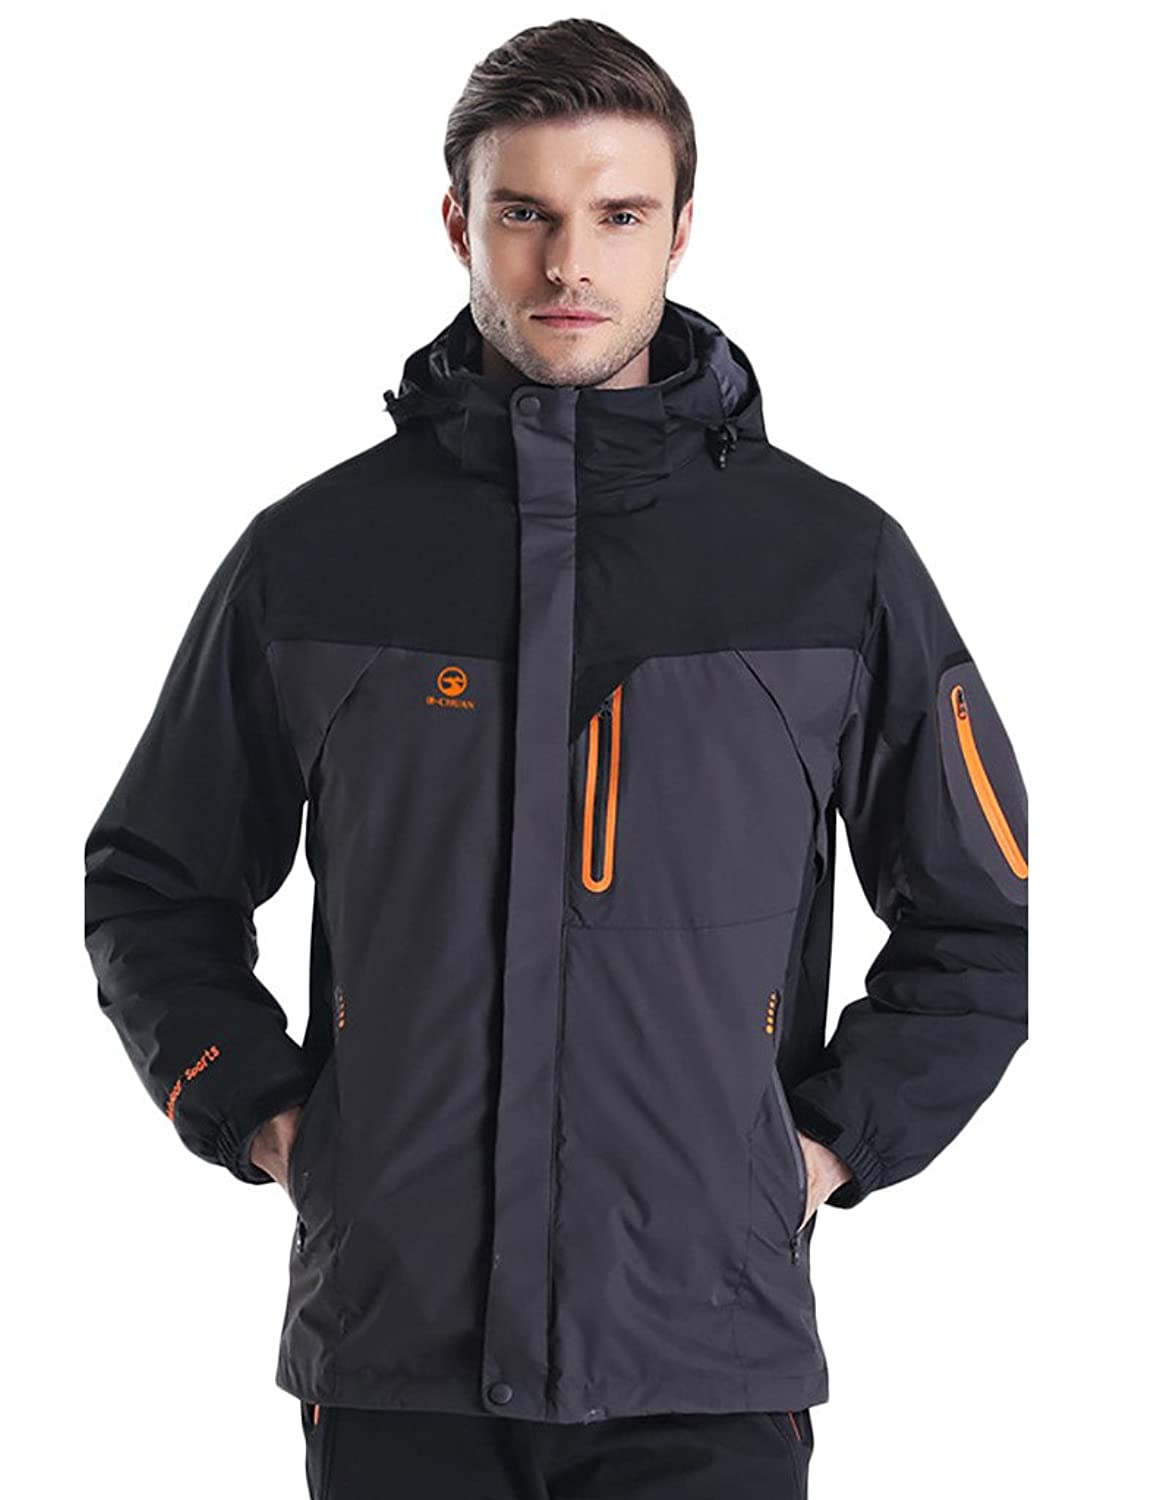 JIMMY DESIGN Herren 3 in 1 Jacke Winddicht Wasserdicht